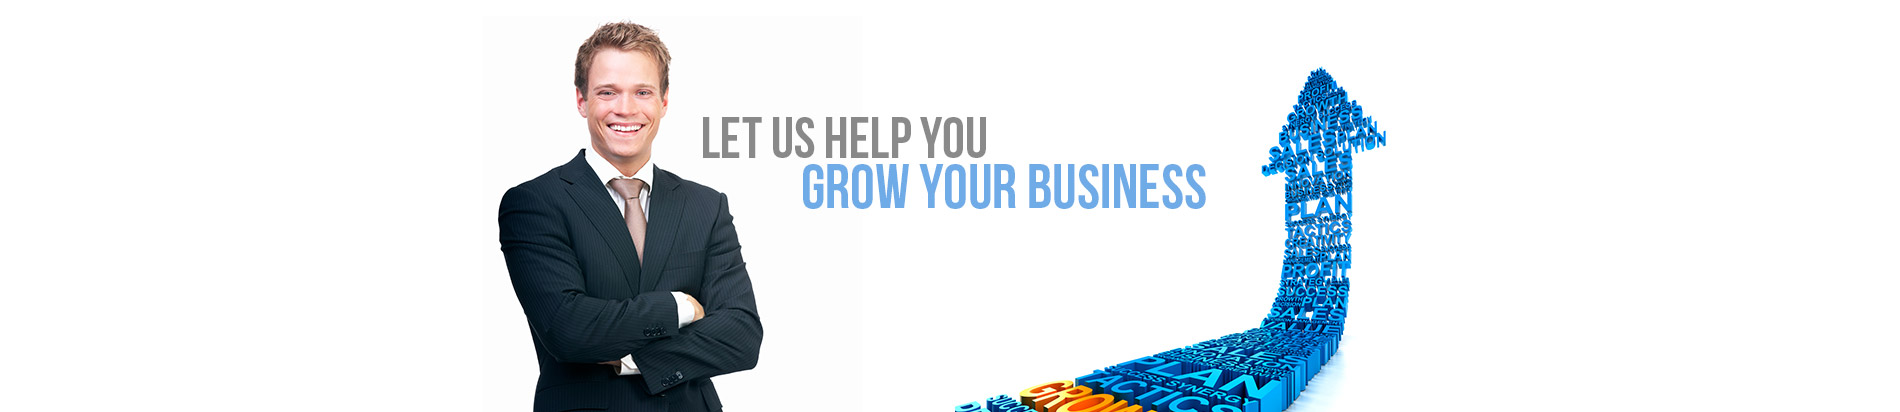 Let us Help you Grow your business